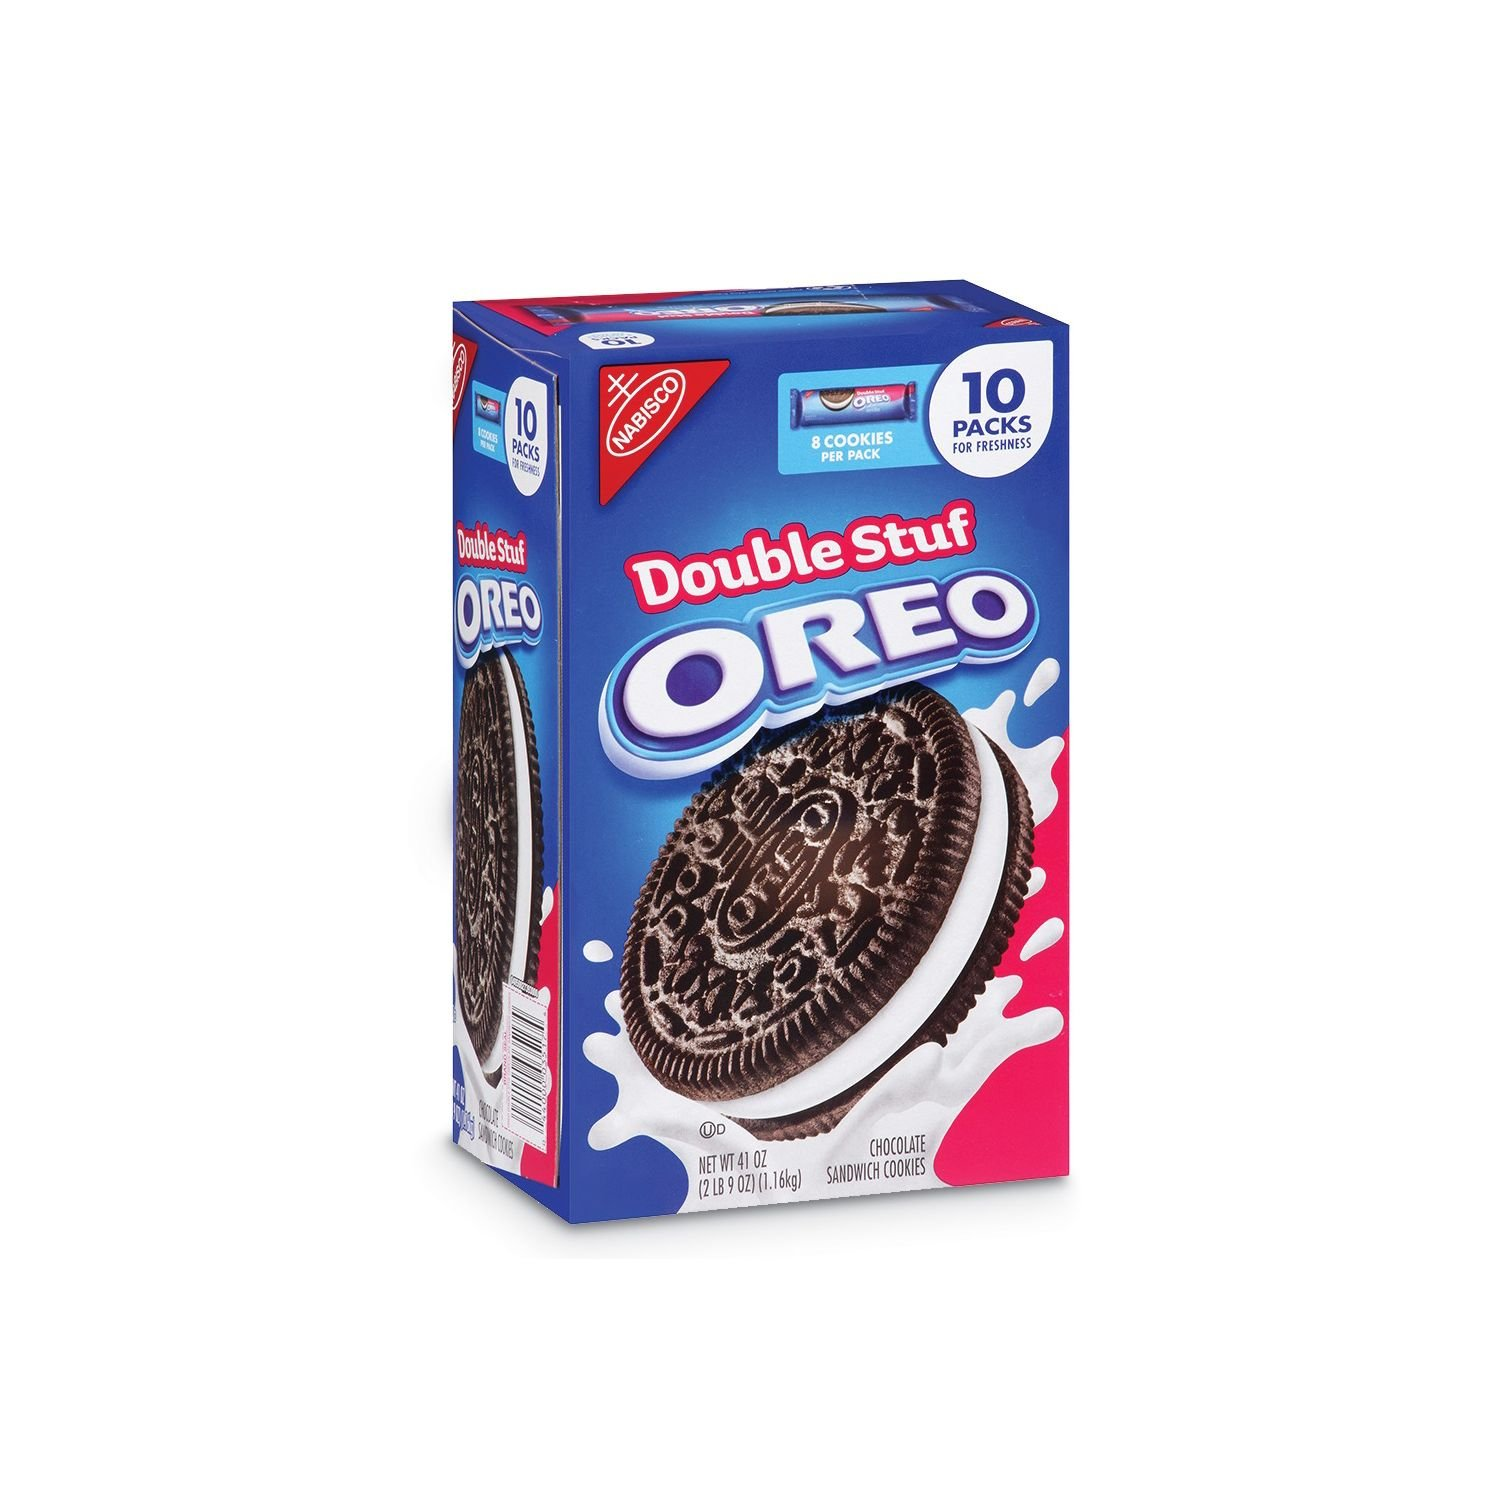 Nabisco Double Stuf Oreo (8 cookies/pack, 10 pks.) (pack of 2)